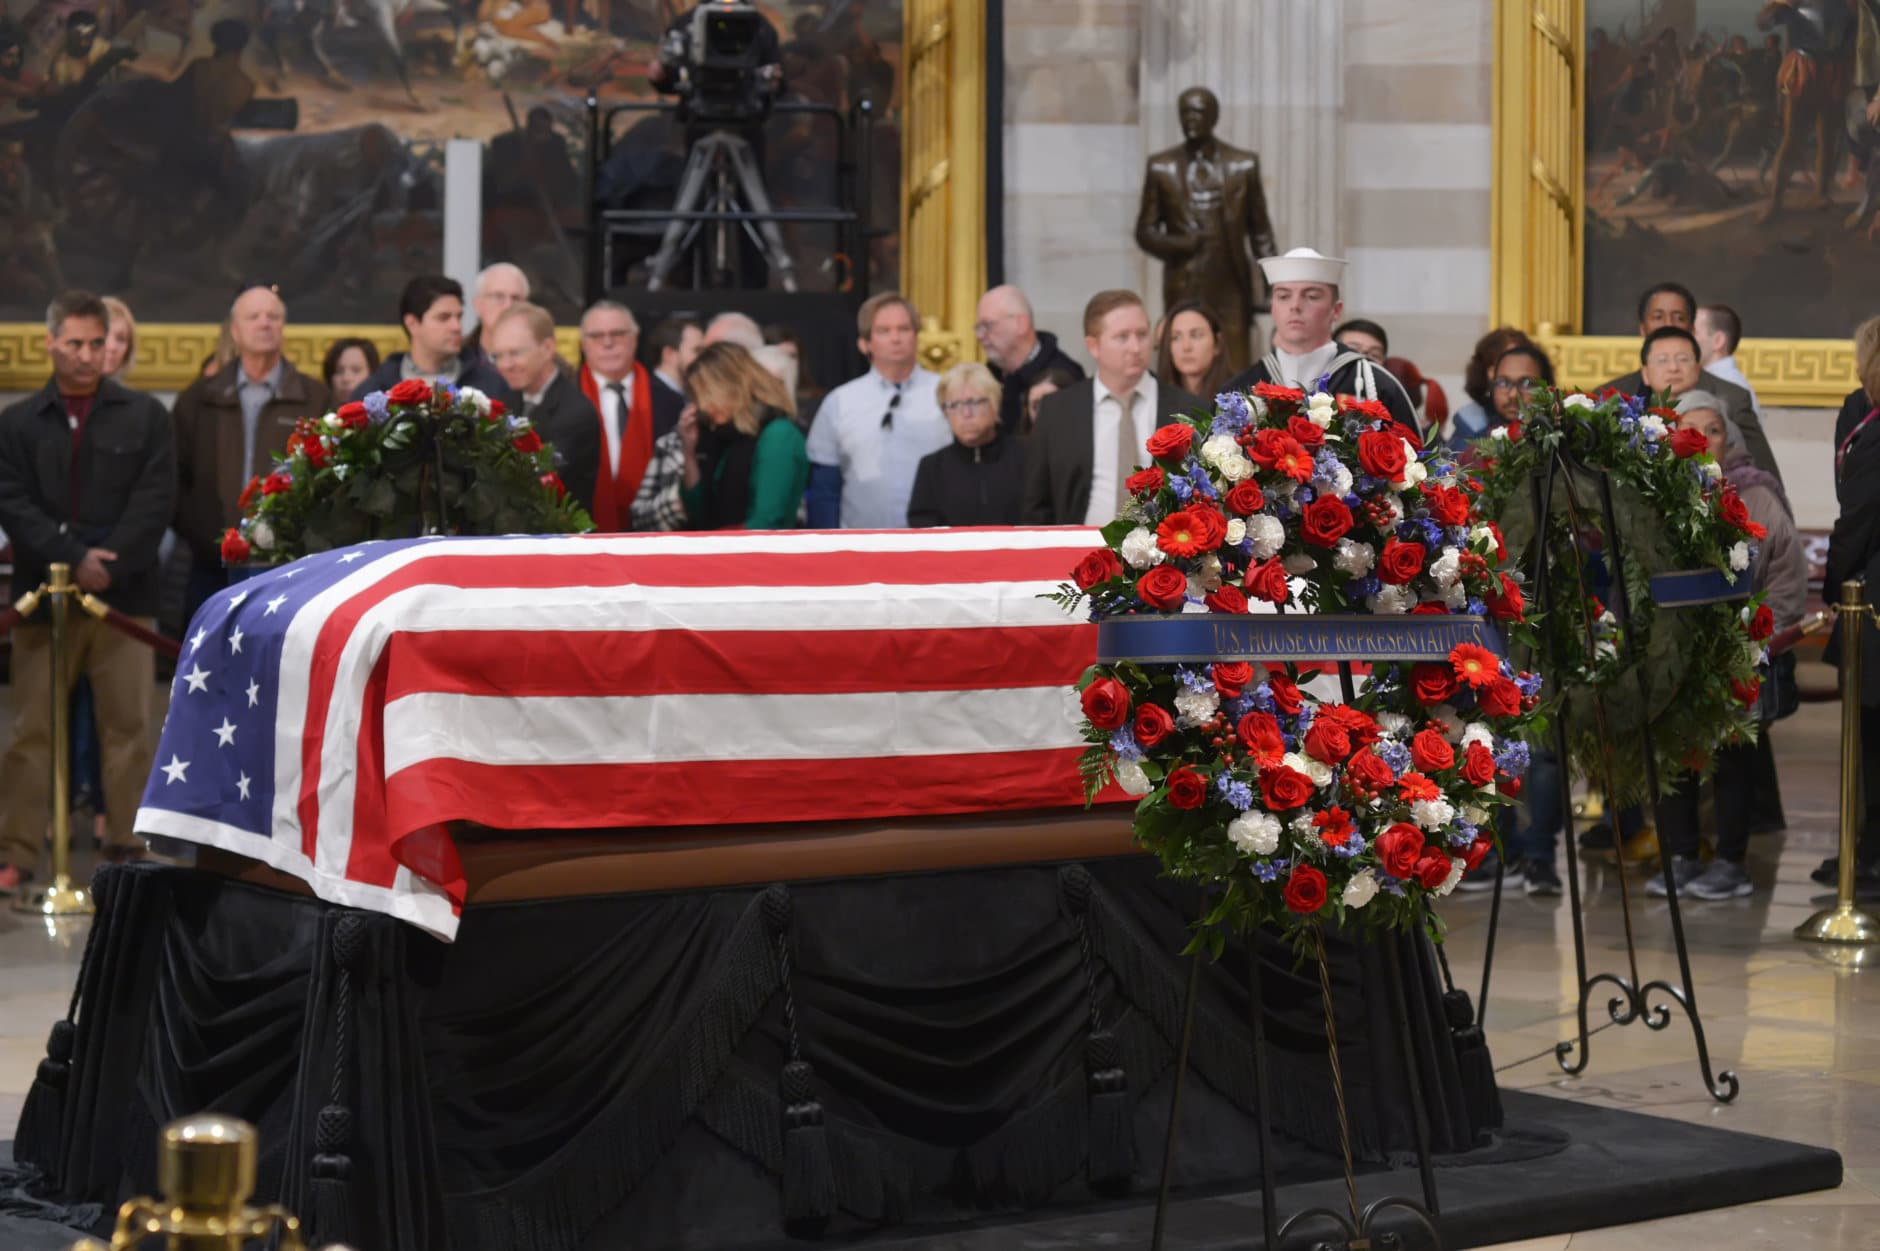 "The 41st President George H.W. Bush lies in state at the U.S. Capitol Rotunda. (Courtesy Shannon Finney/<a href=""https://www.shannonfinneyphotography.com/index"" target=""_blank"" rel=""noopener noreferrer"">shannonfinneyphotography.com</a>)"